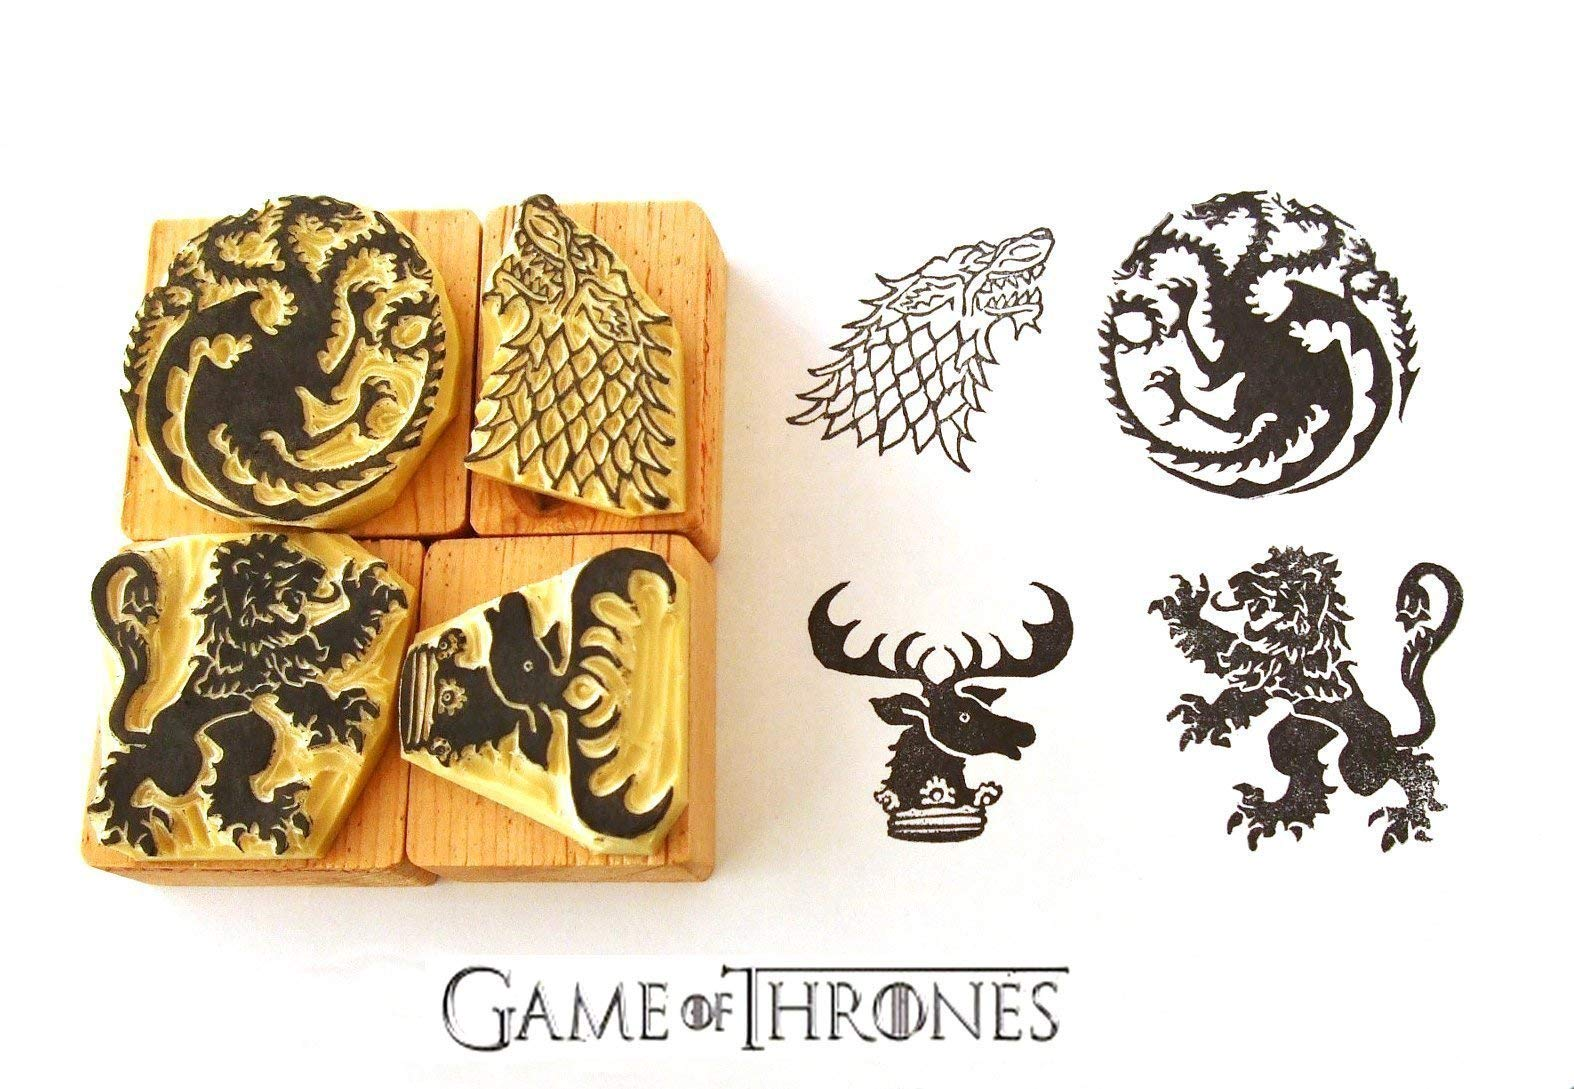 Game of Thrones inspired Hand carved rubber stamp set 2. House Targaryen. House Stark. House Lannister. House Baratheon Sigils